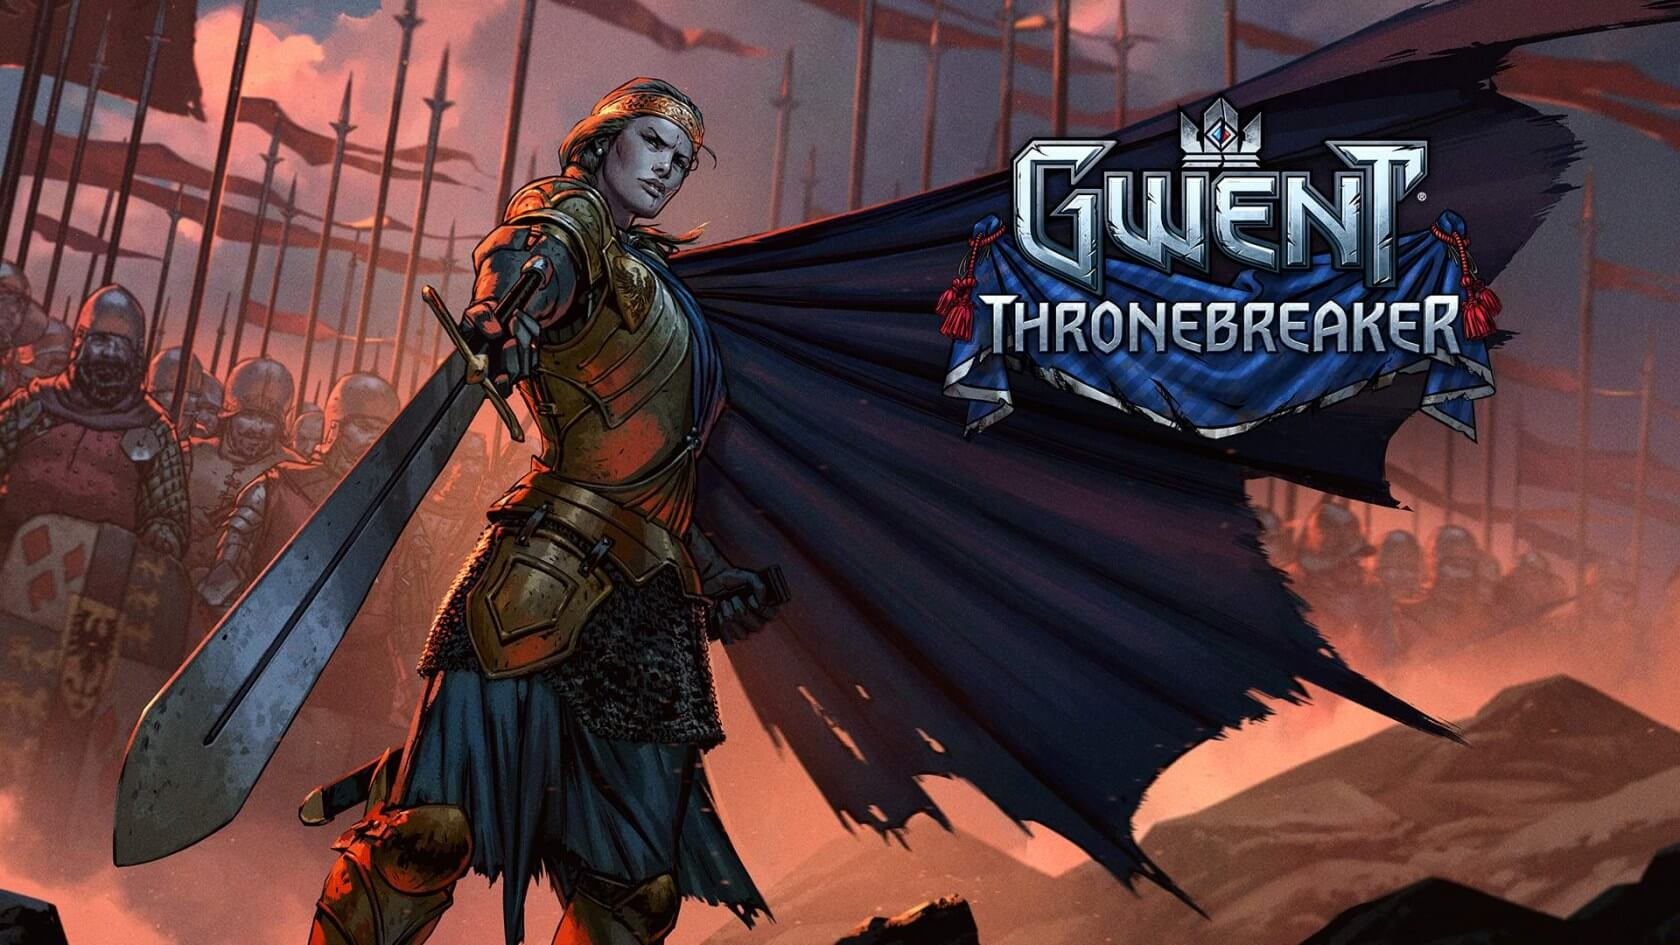 Sales of Thronebreaker: The Witcher Tales fail to meet CD Projekt's expectations